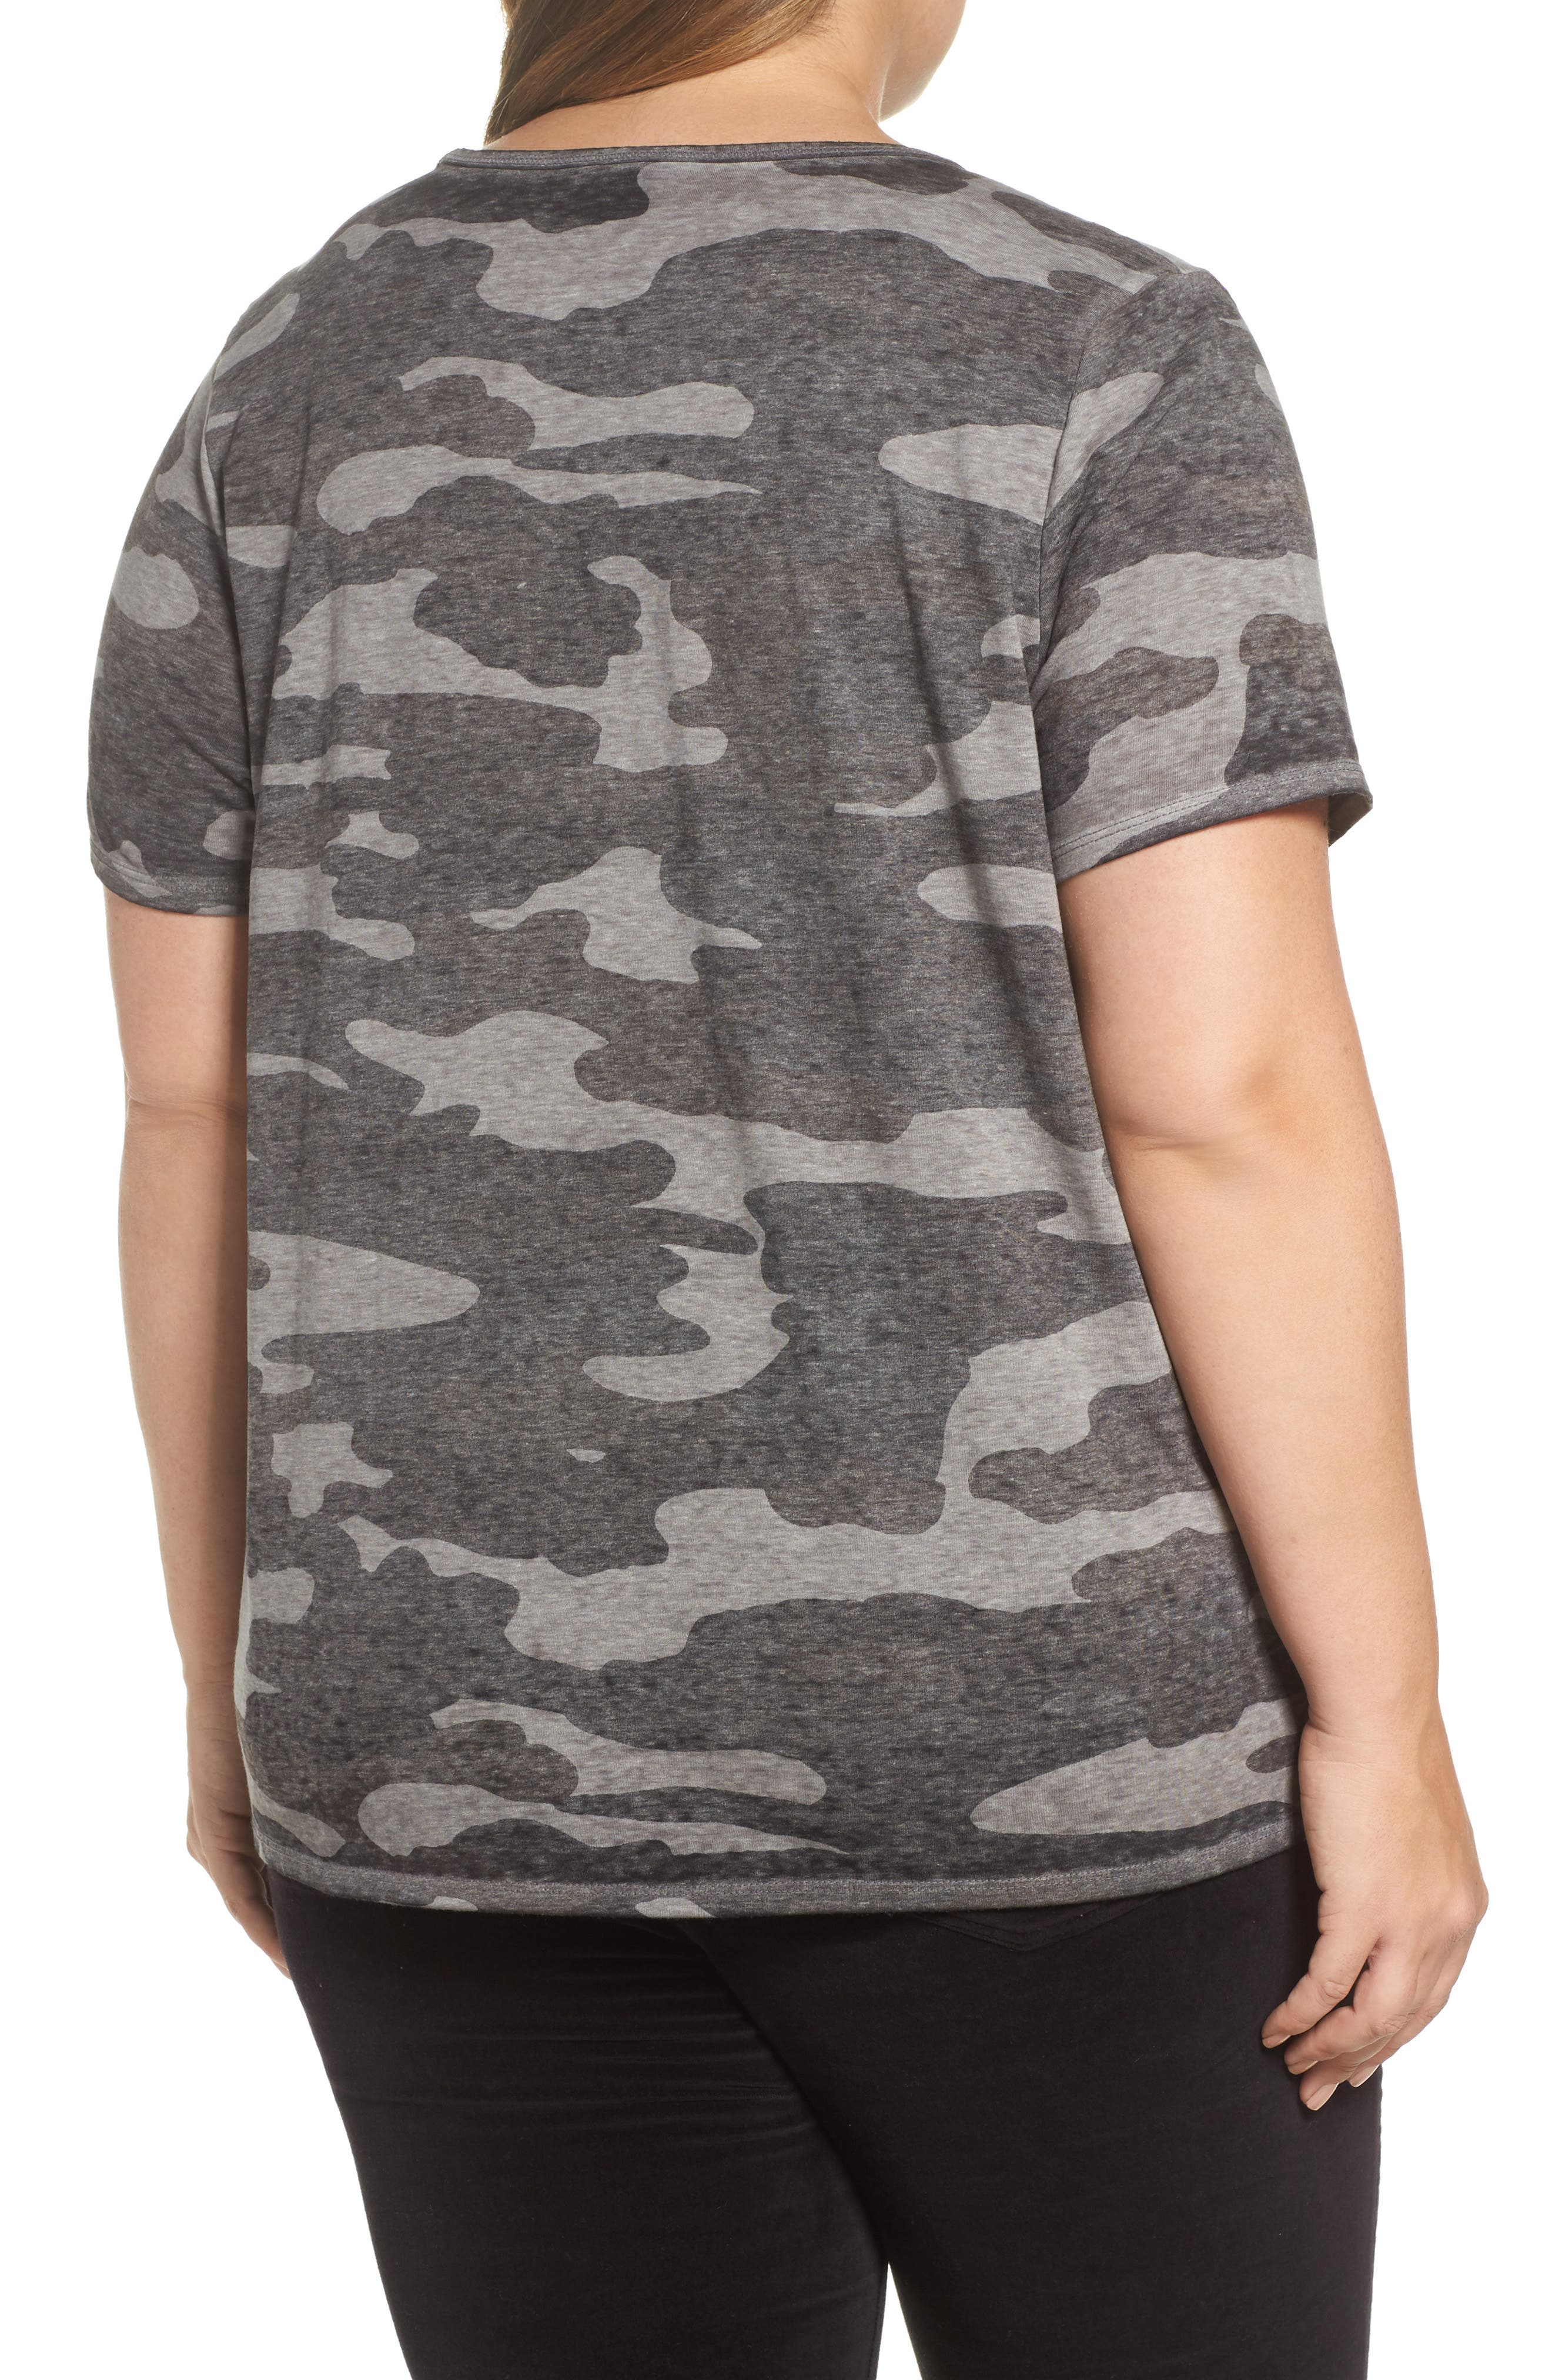 LUCKY BRAND, Lace-Up Camo Tee, Alternate thumbnail 2, color, GREY MULTI